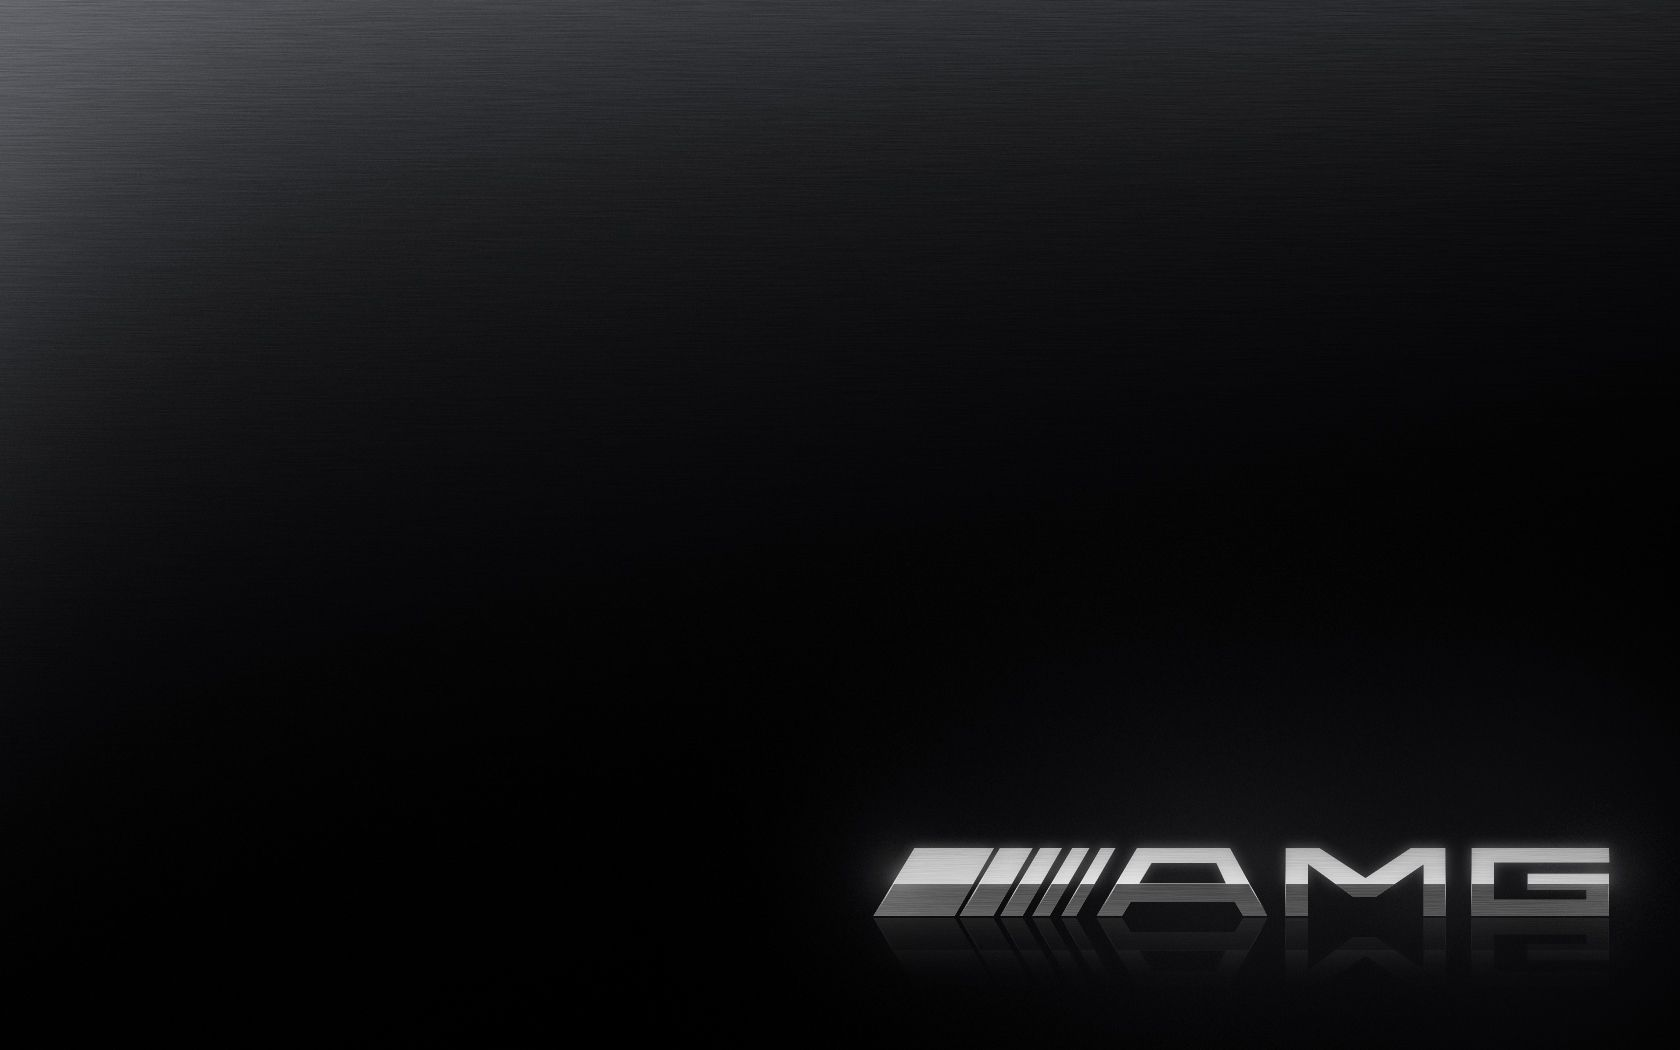 mercedes benz logo black background. mercedes benz c amg hd wallpapers backgrounds wallpaper logo black background